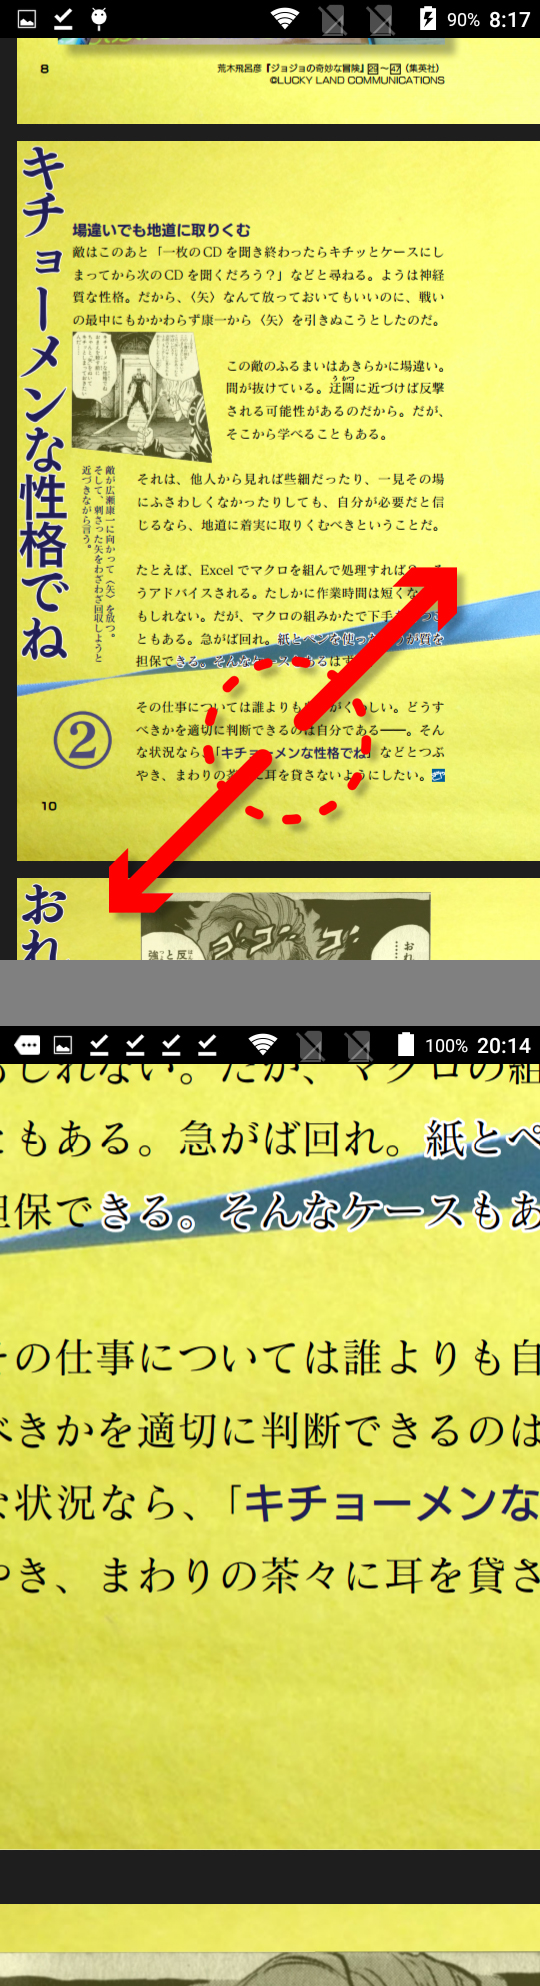 androidのプロセス05